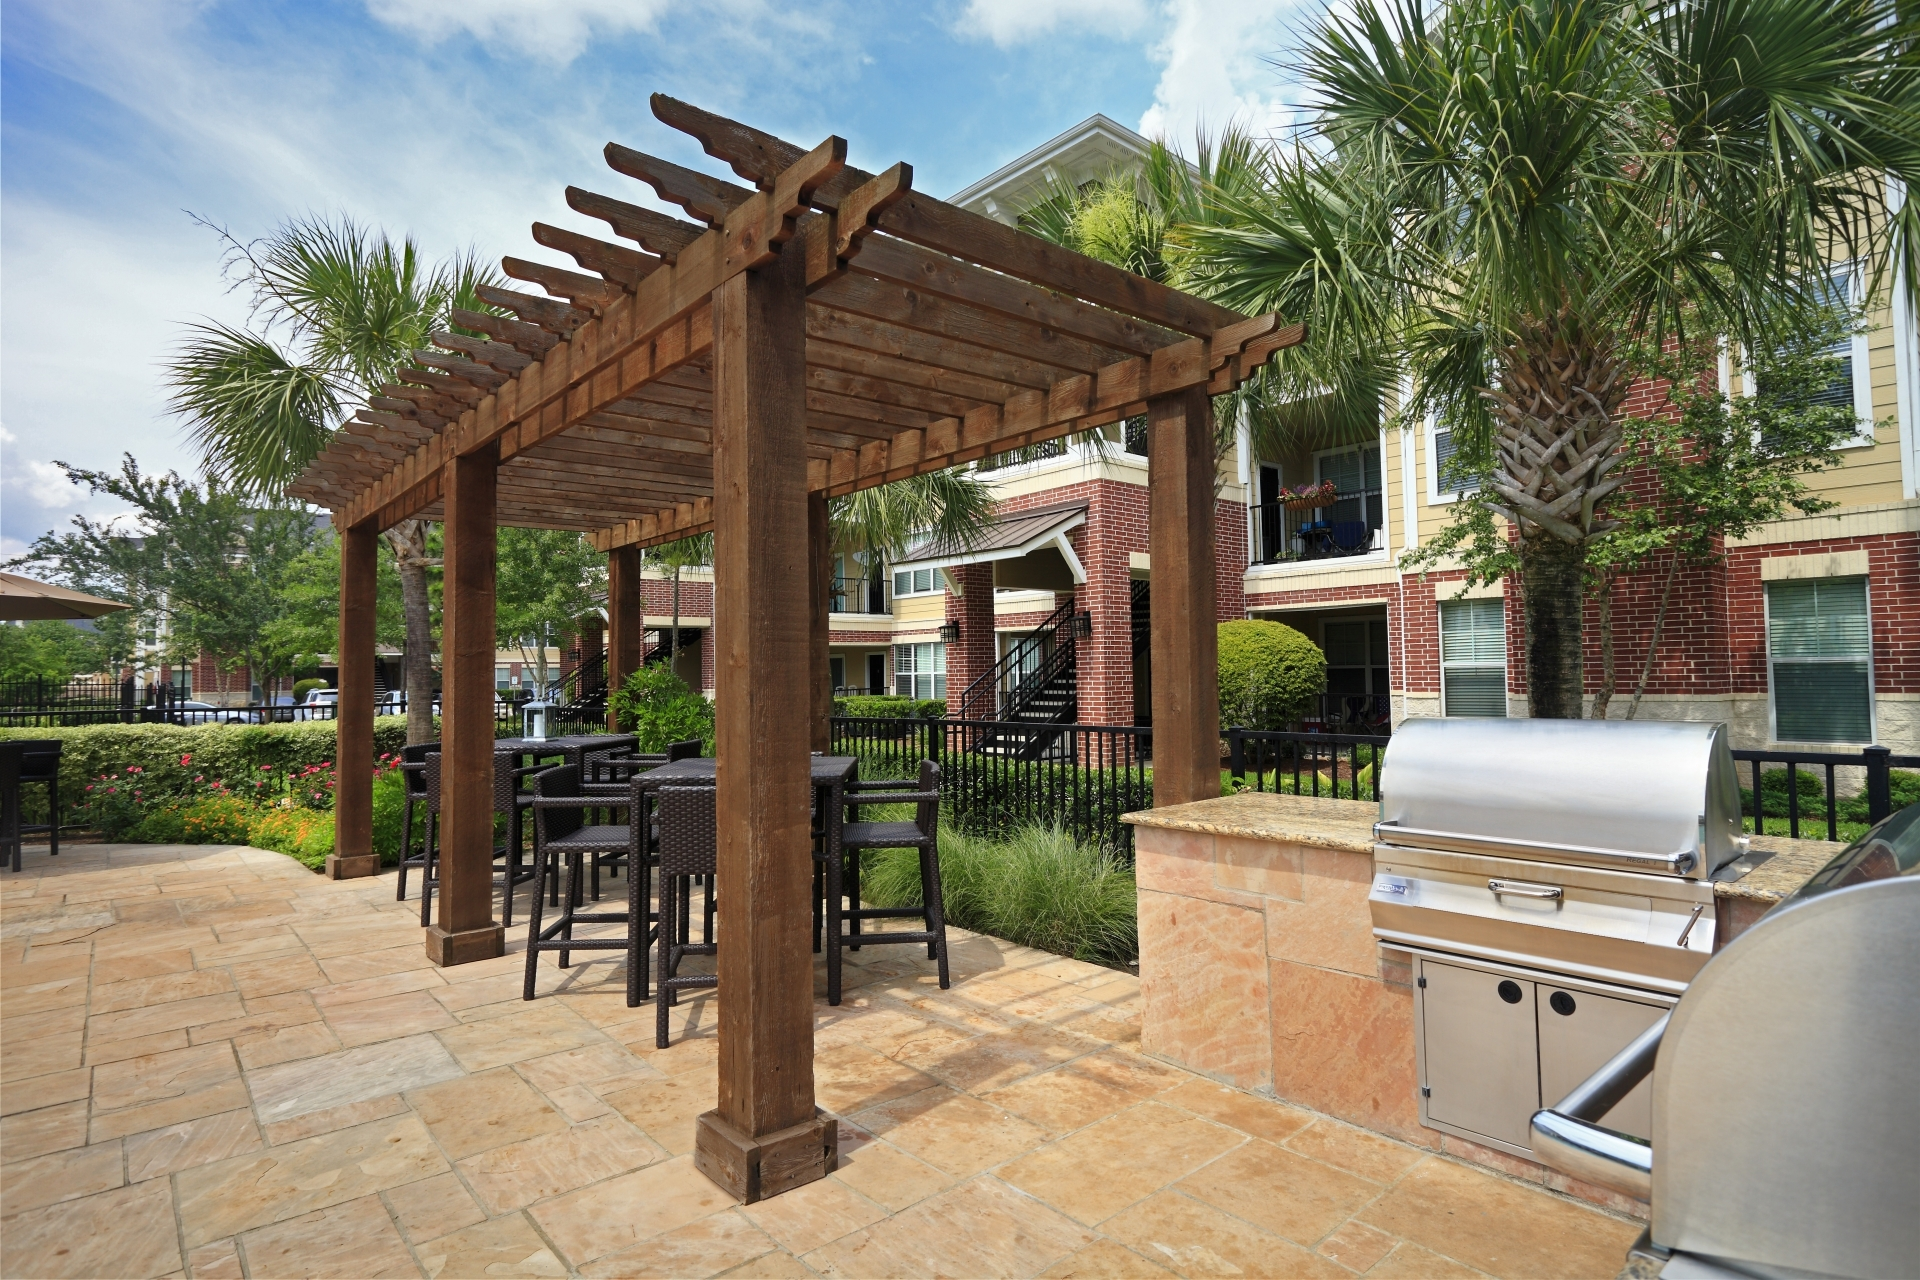 OUTDOOR KITCHEN AND GRILLING